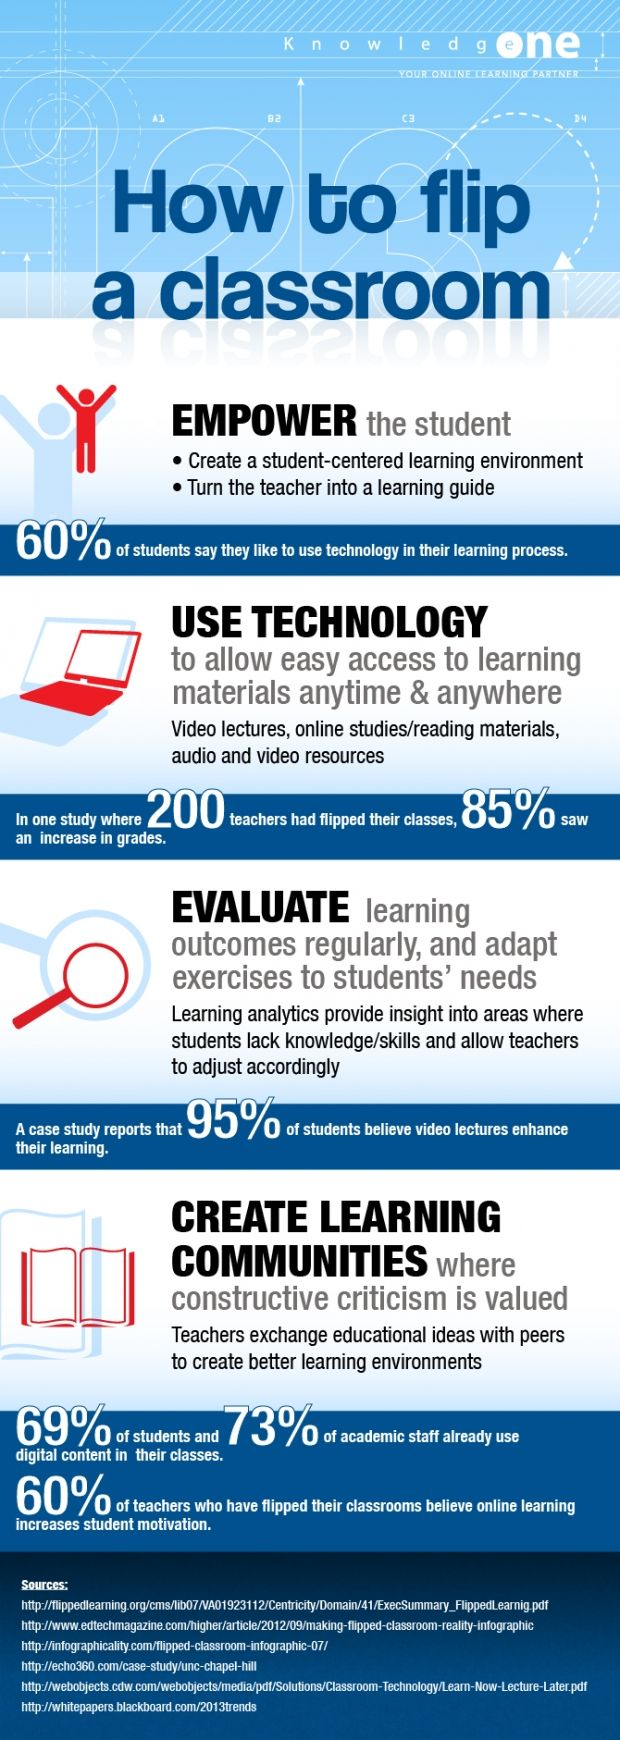 How to Flip a Classroom (#INFOGRAPHIC)